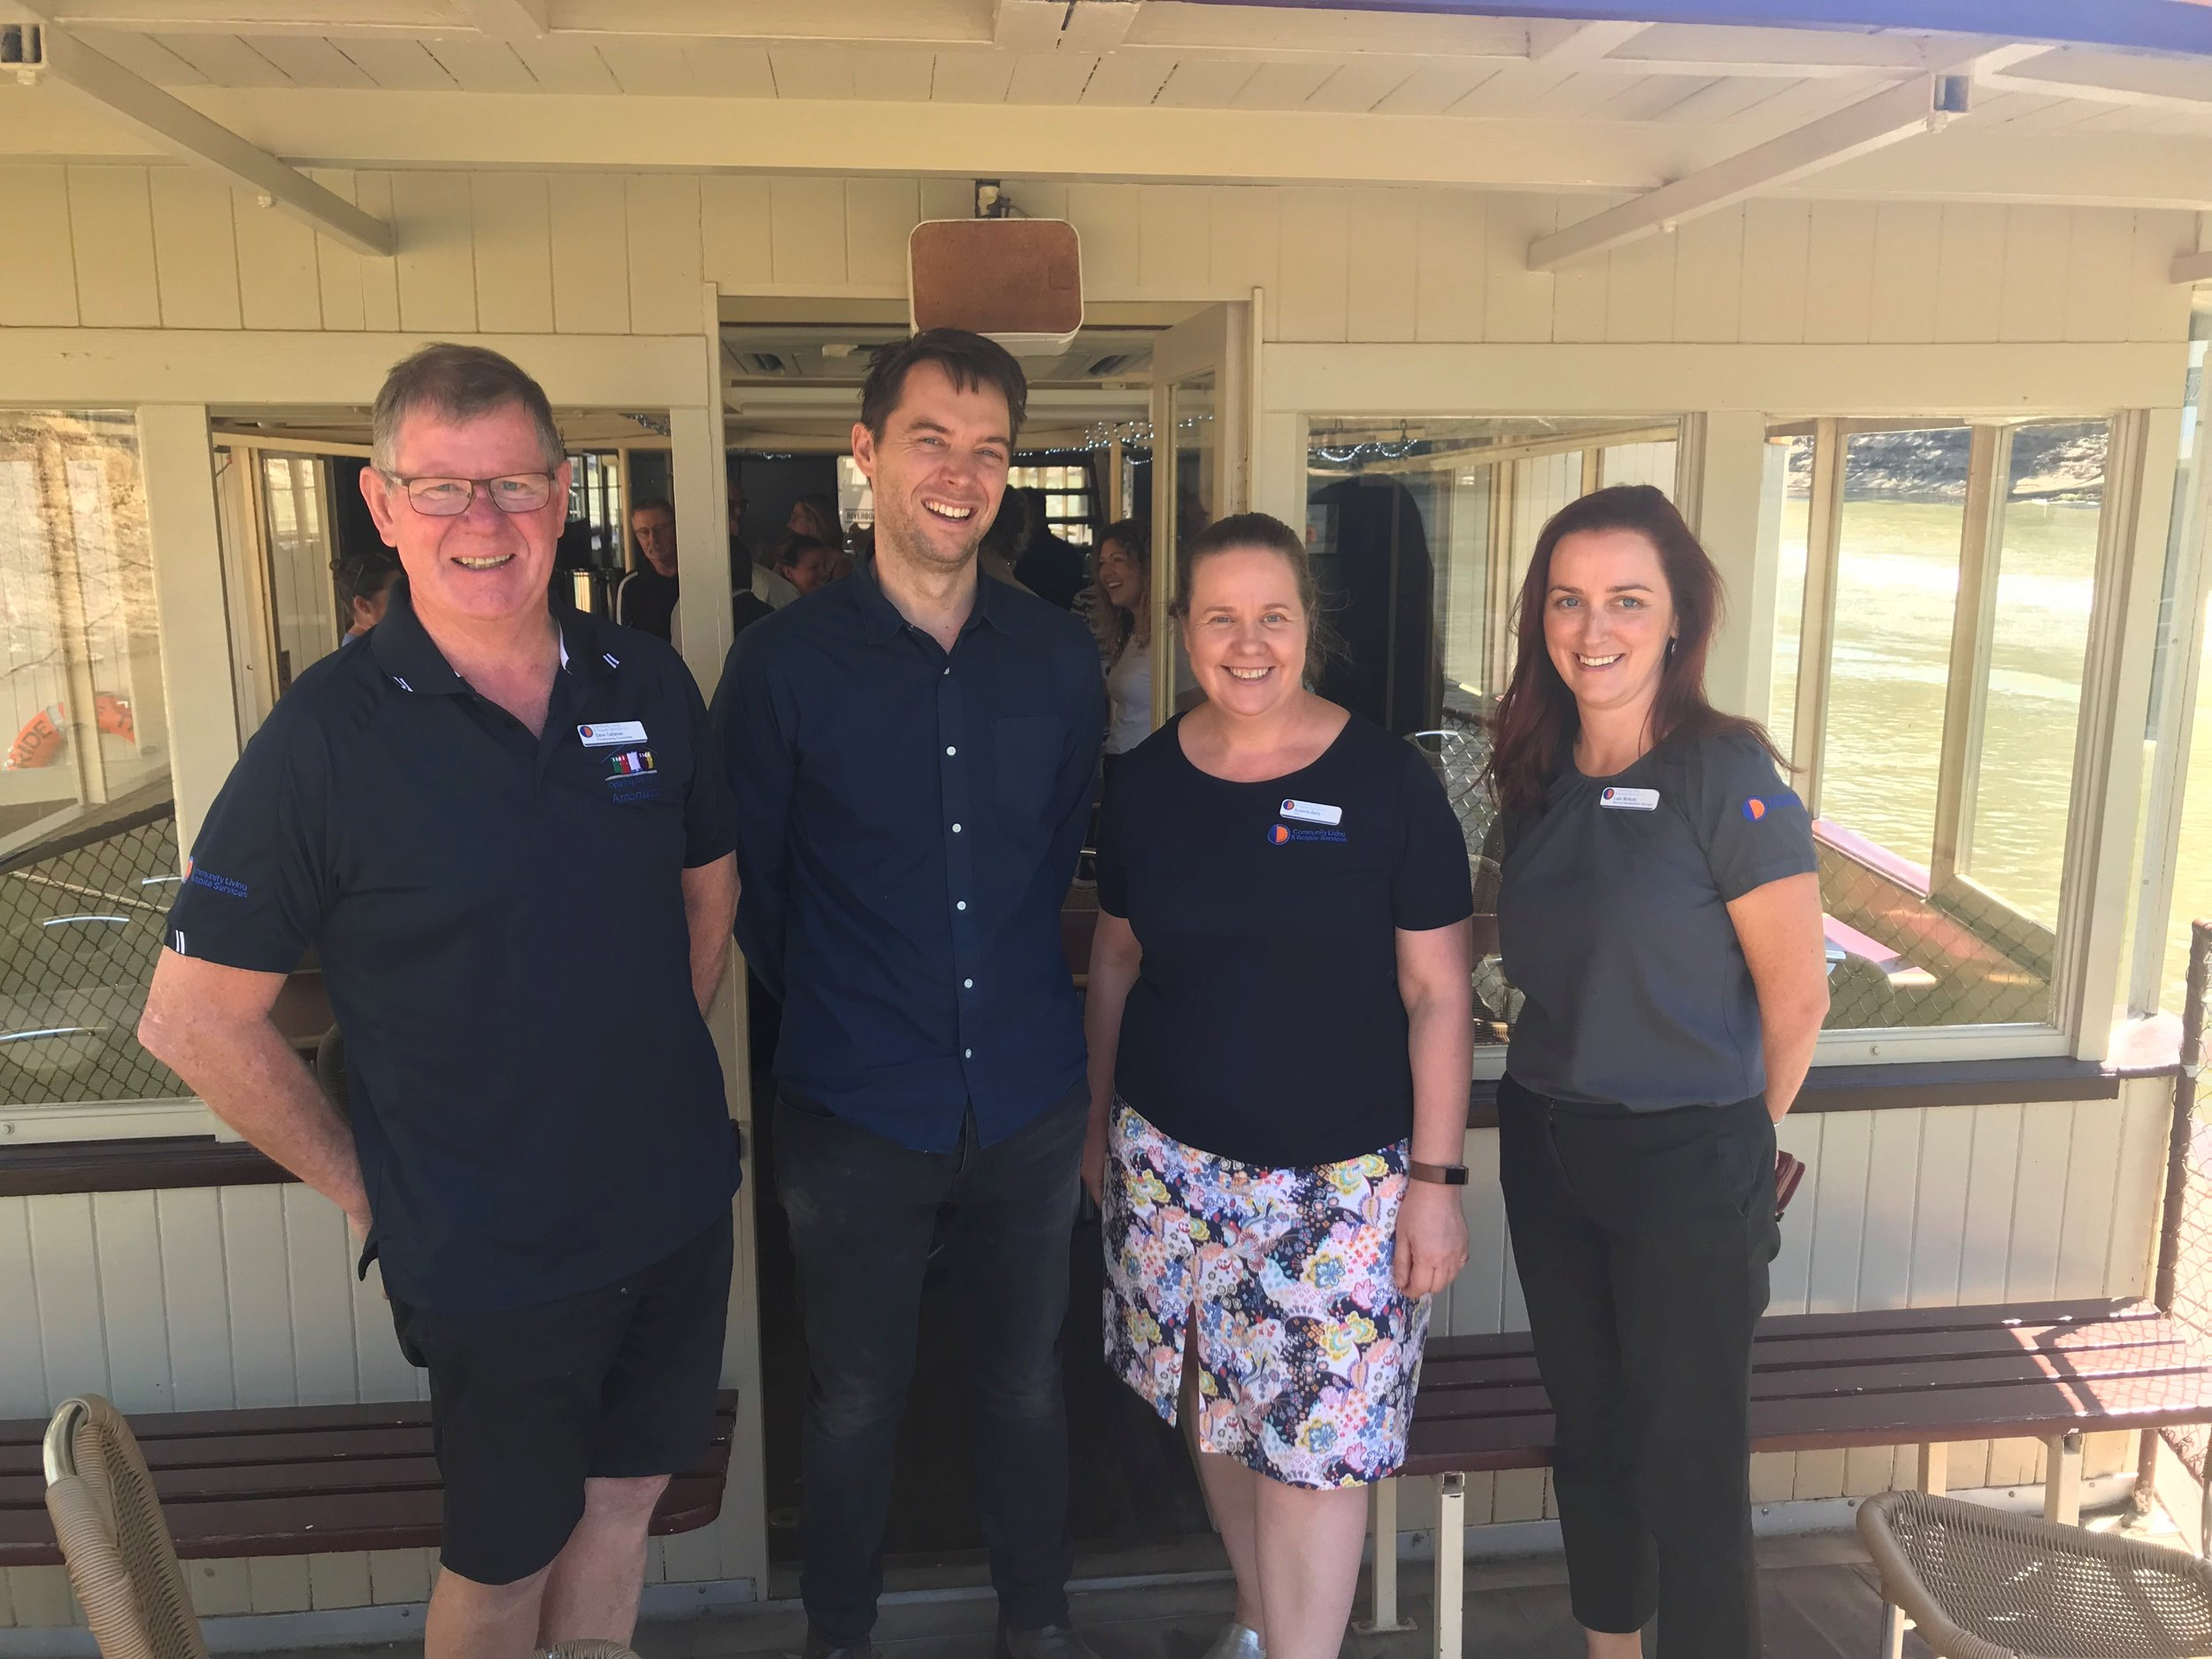 Fundraising Coordinator Dave Callanan, CEO Suzanna Barry and Service Development Manager Leah McNulty from Community Living & Respite Services with Riverboats Music Festival Director David Frazer